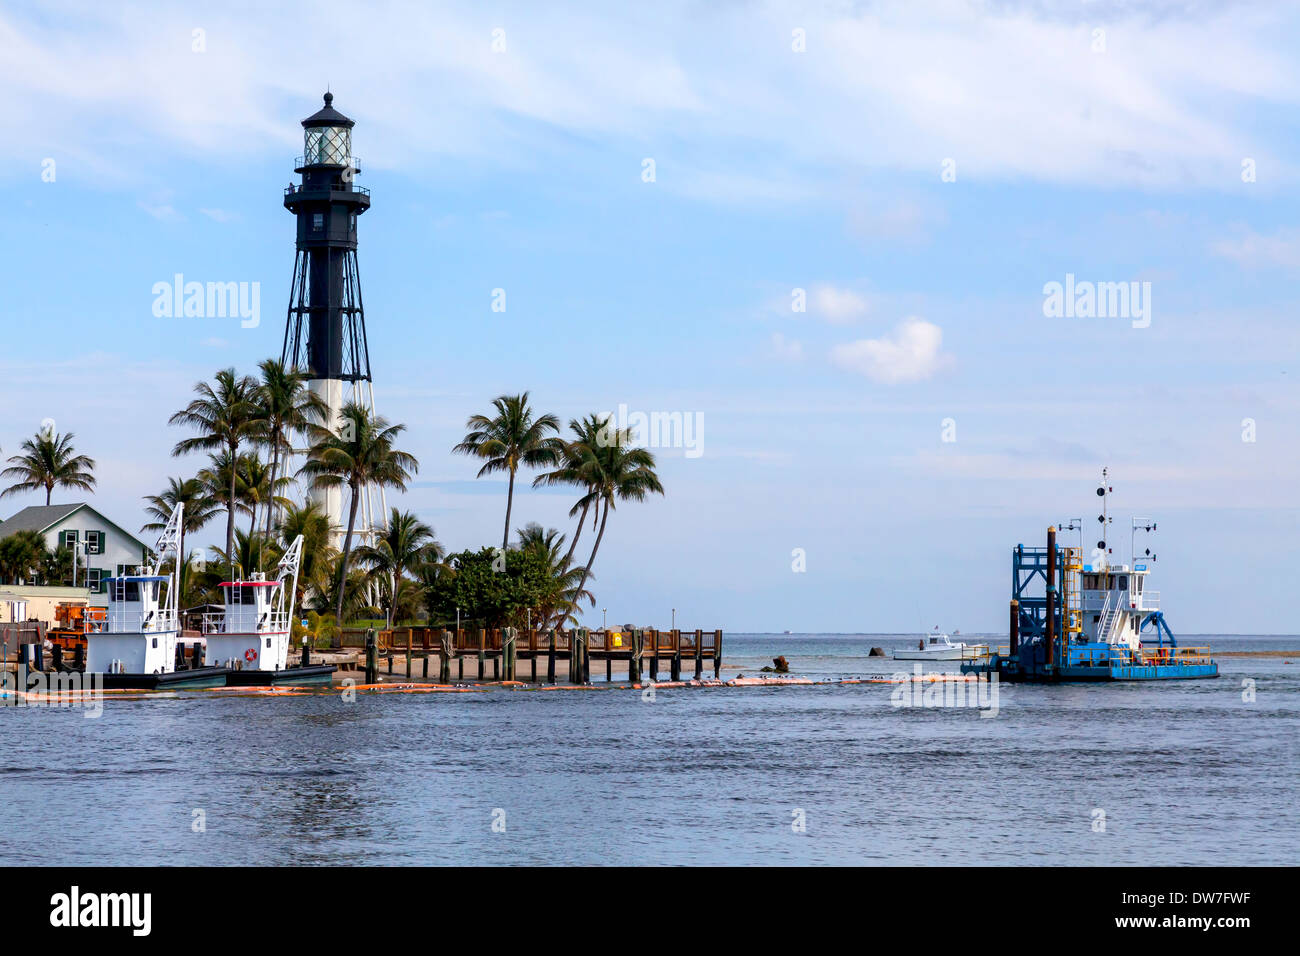 Completed in 1907, the historic 167 foot tall Hillsboro Inlet Lighthouse sits on the point of land on the northeastStock Photo